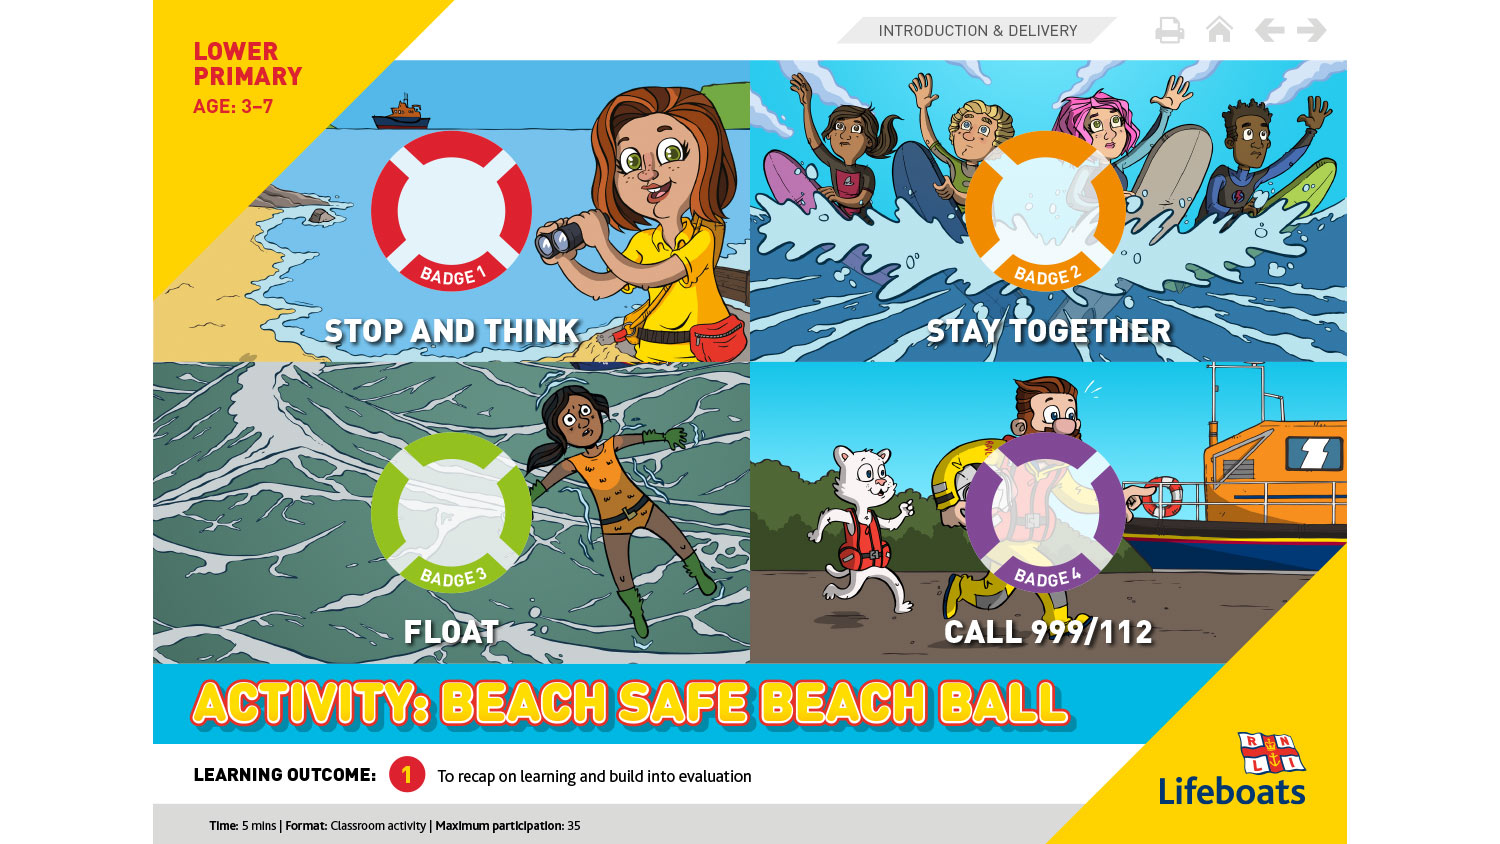 Beach safe beach ball